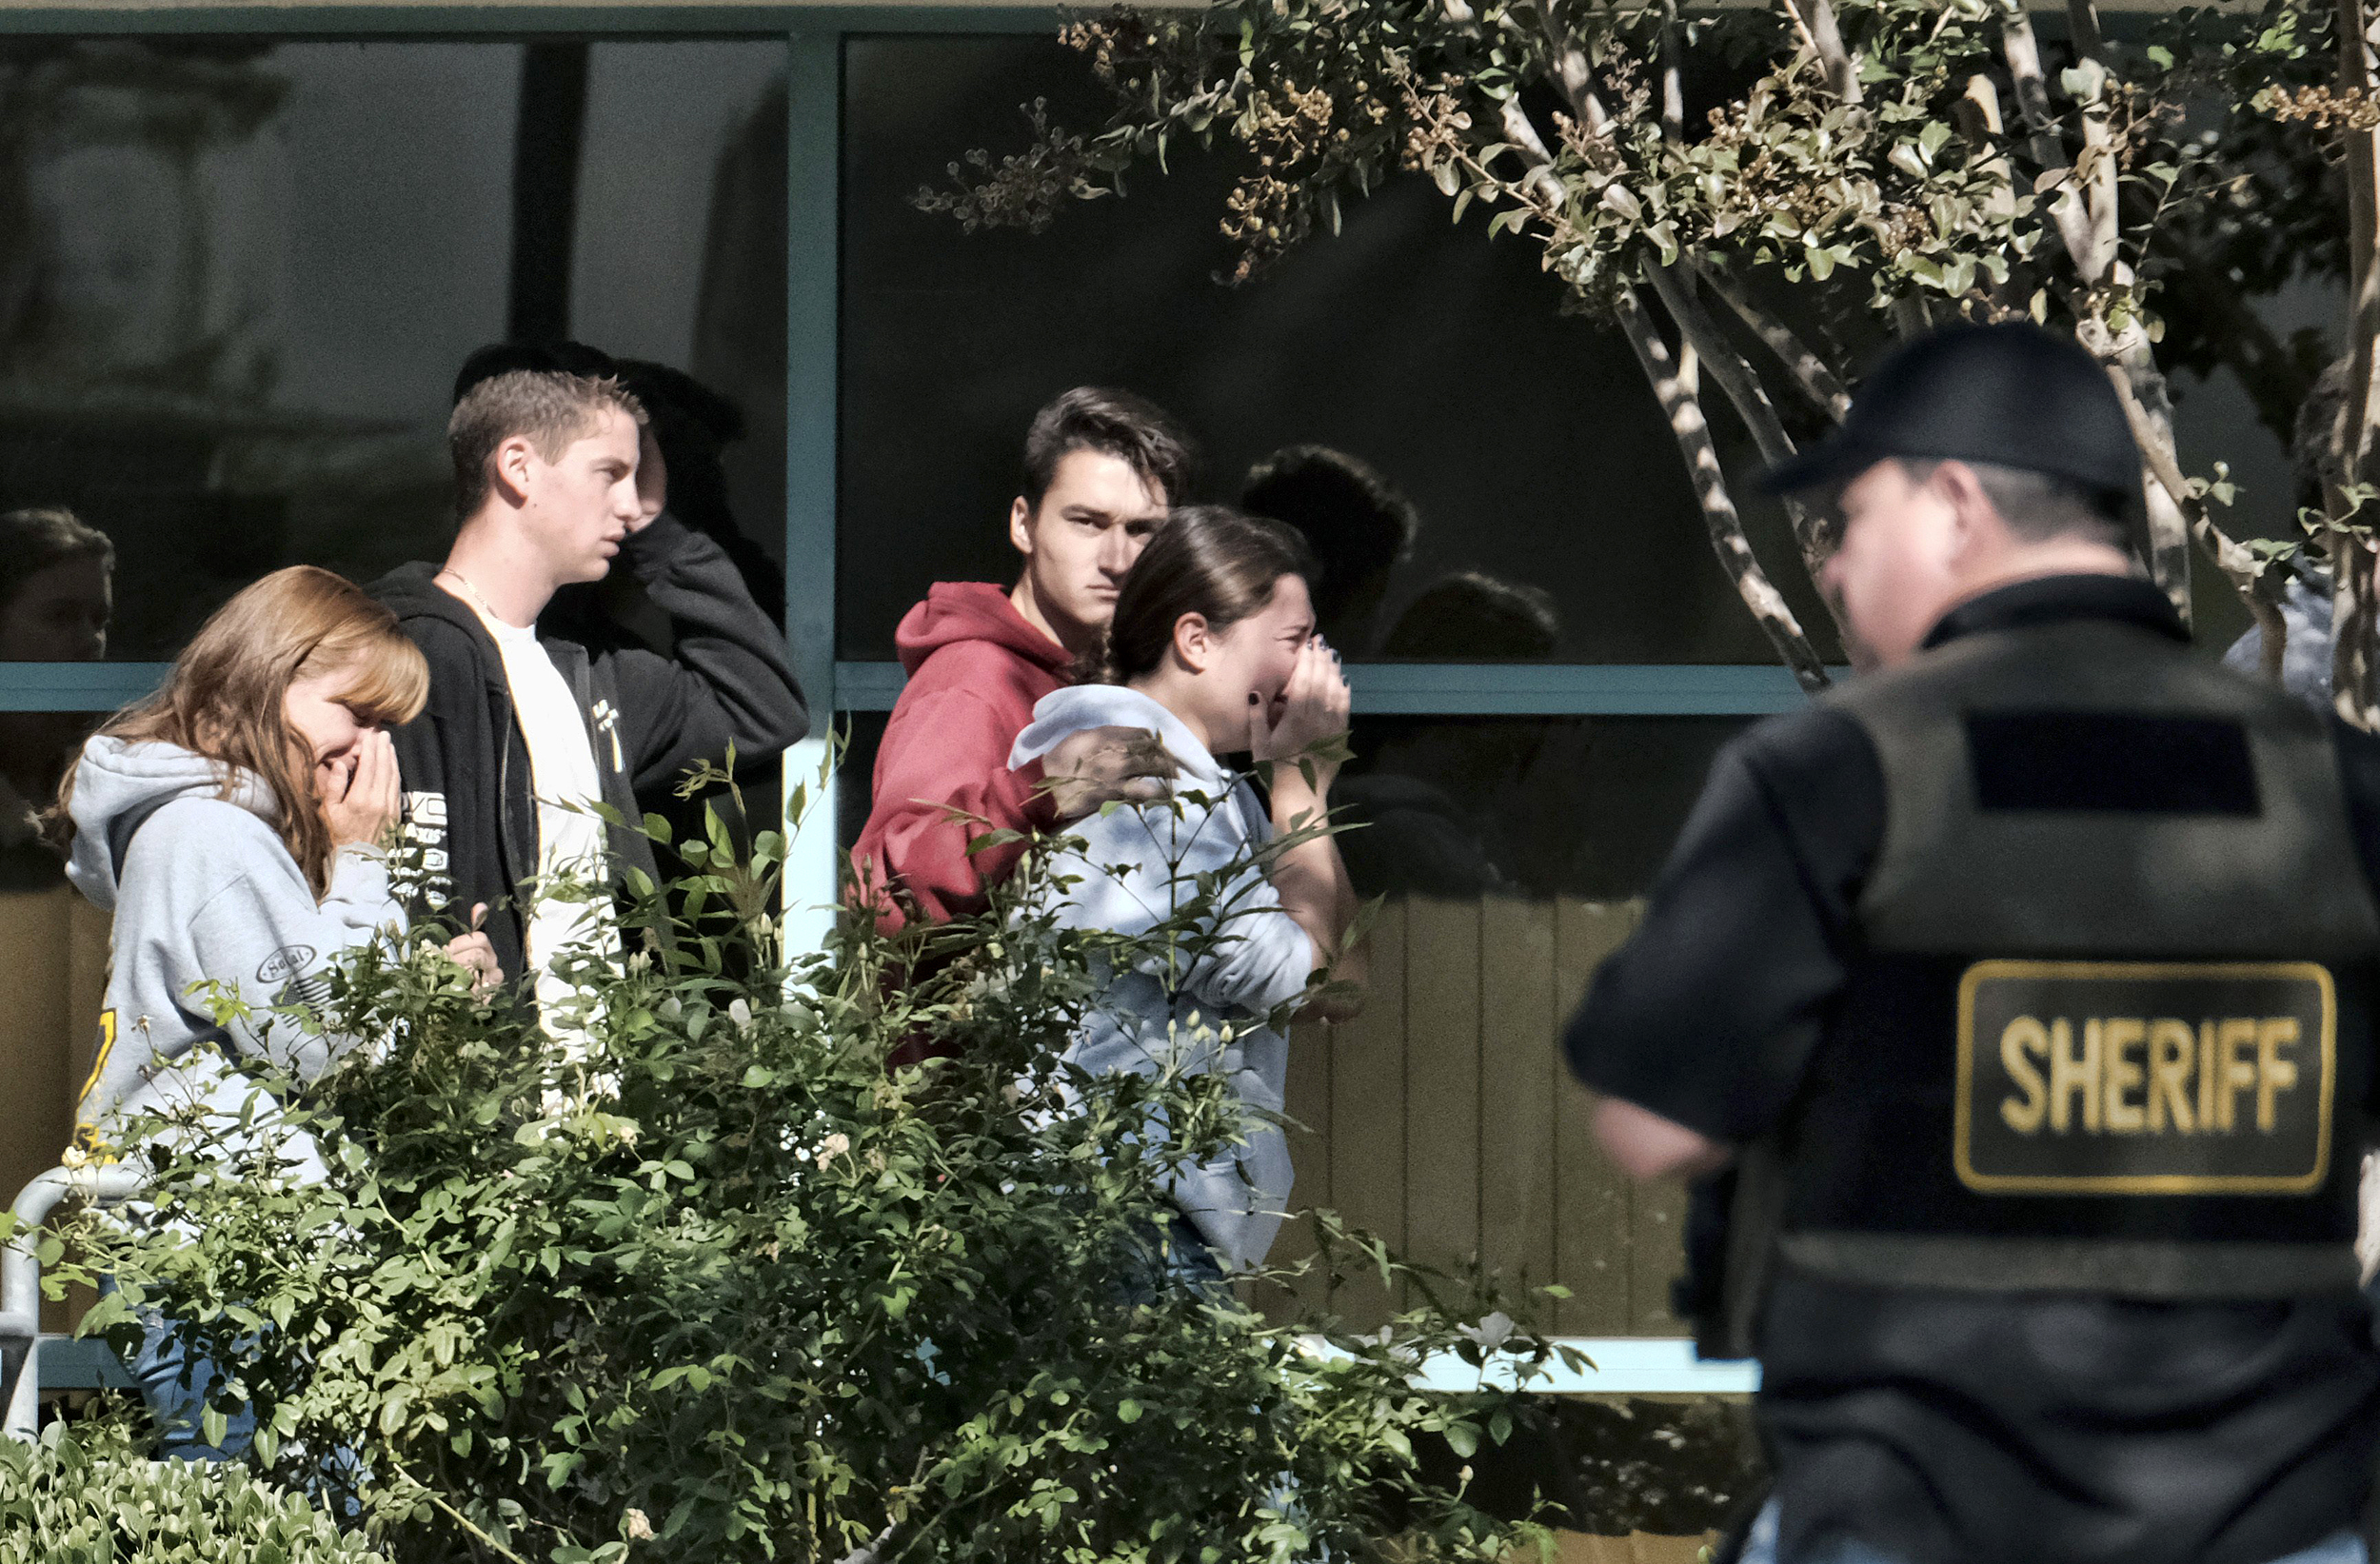 'Oh,-son!-I-love-you-so-much':-The-victims-of-the-Thousand-Oaks-shooting